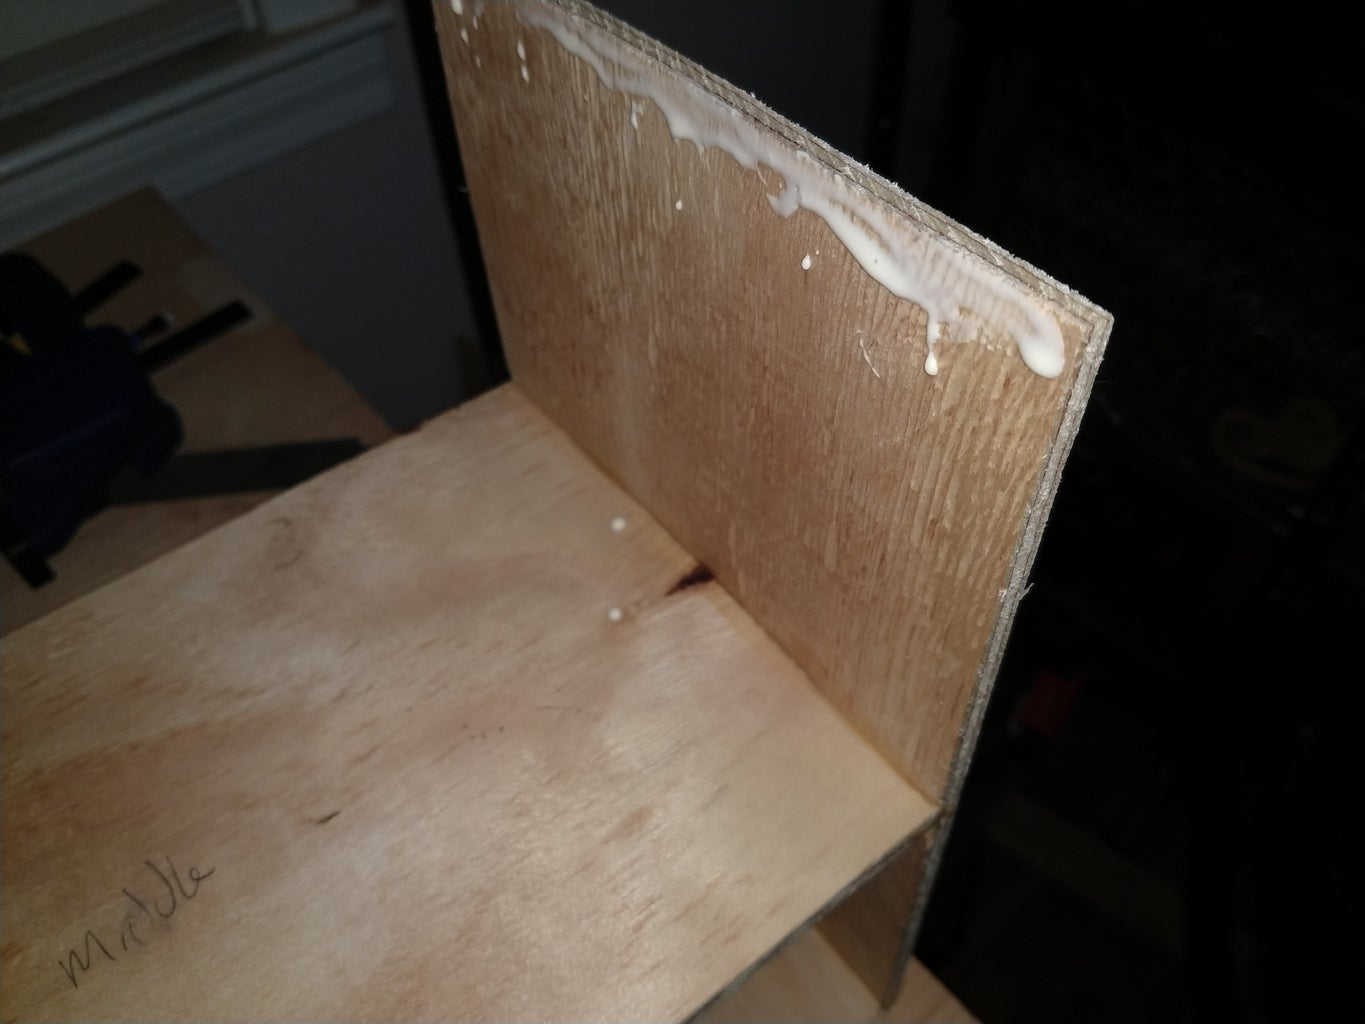 Joining the Top and Bottom Boards